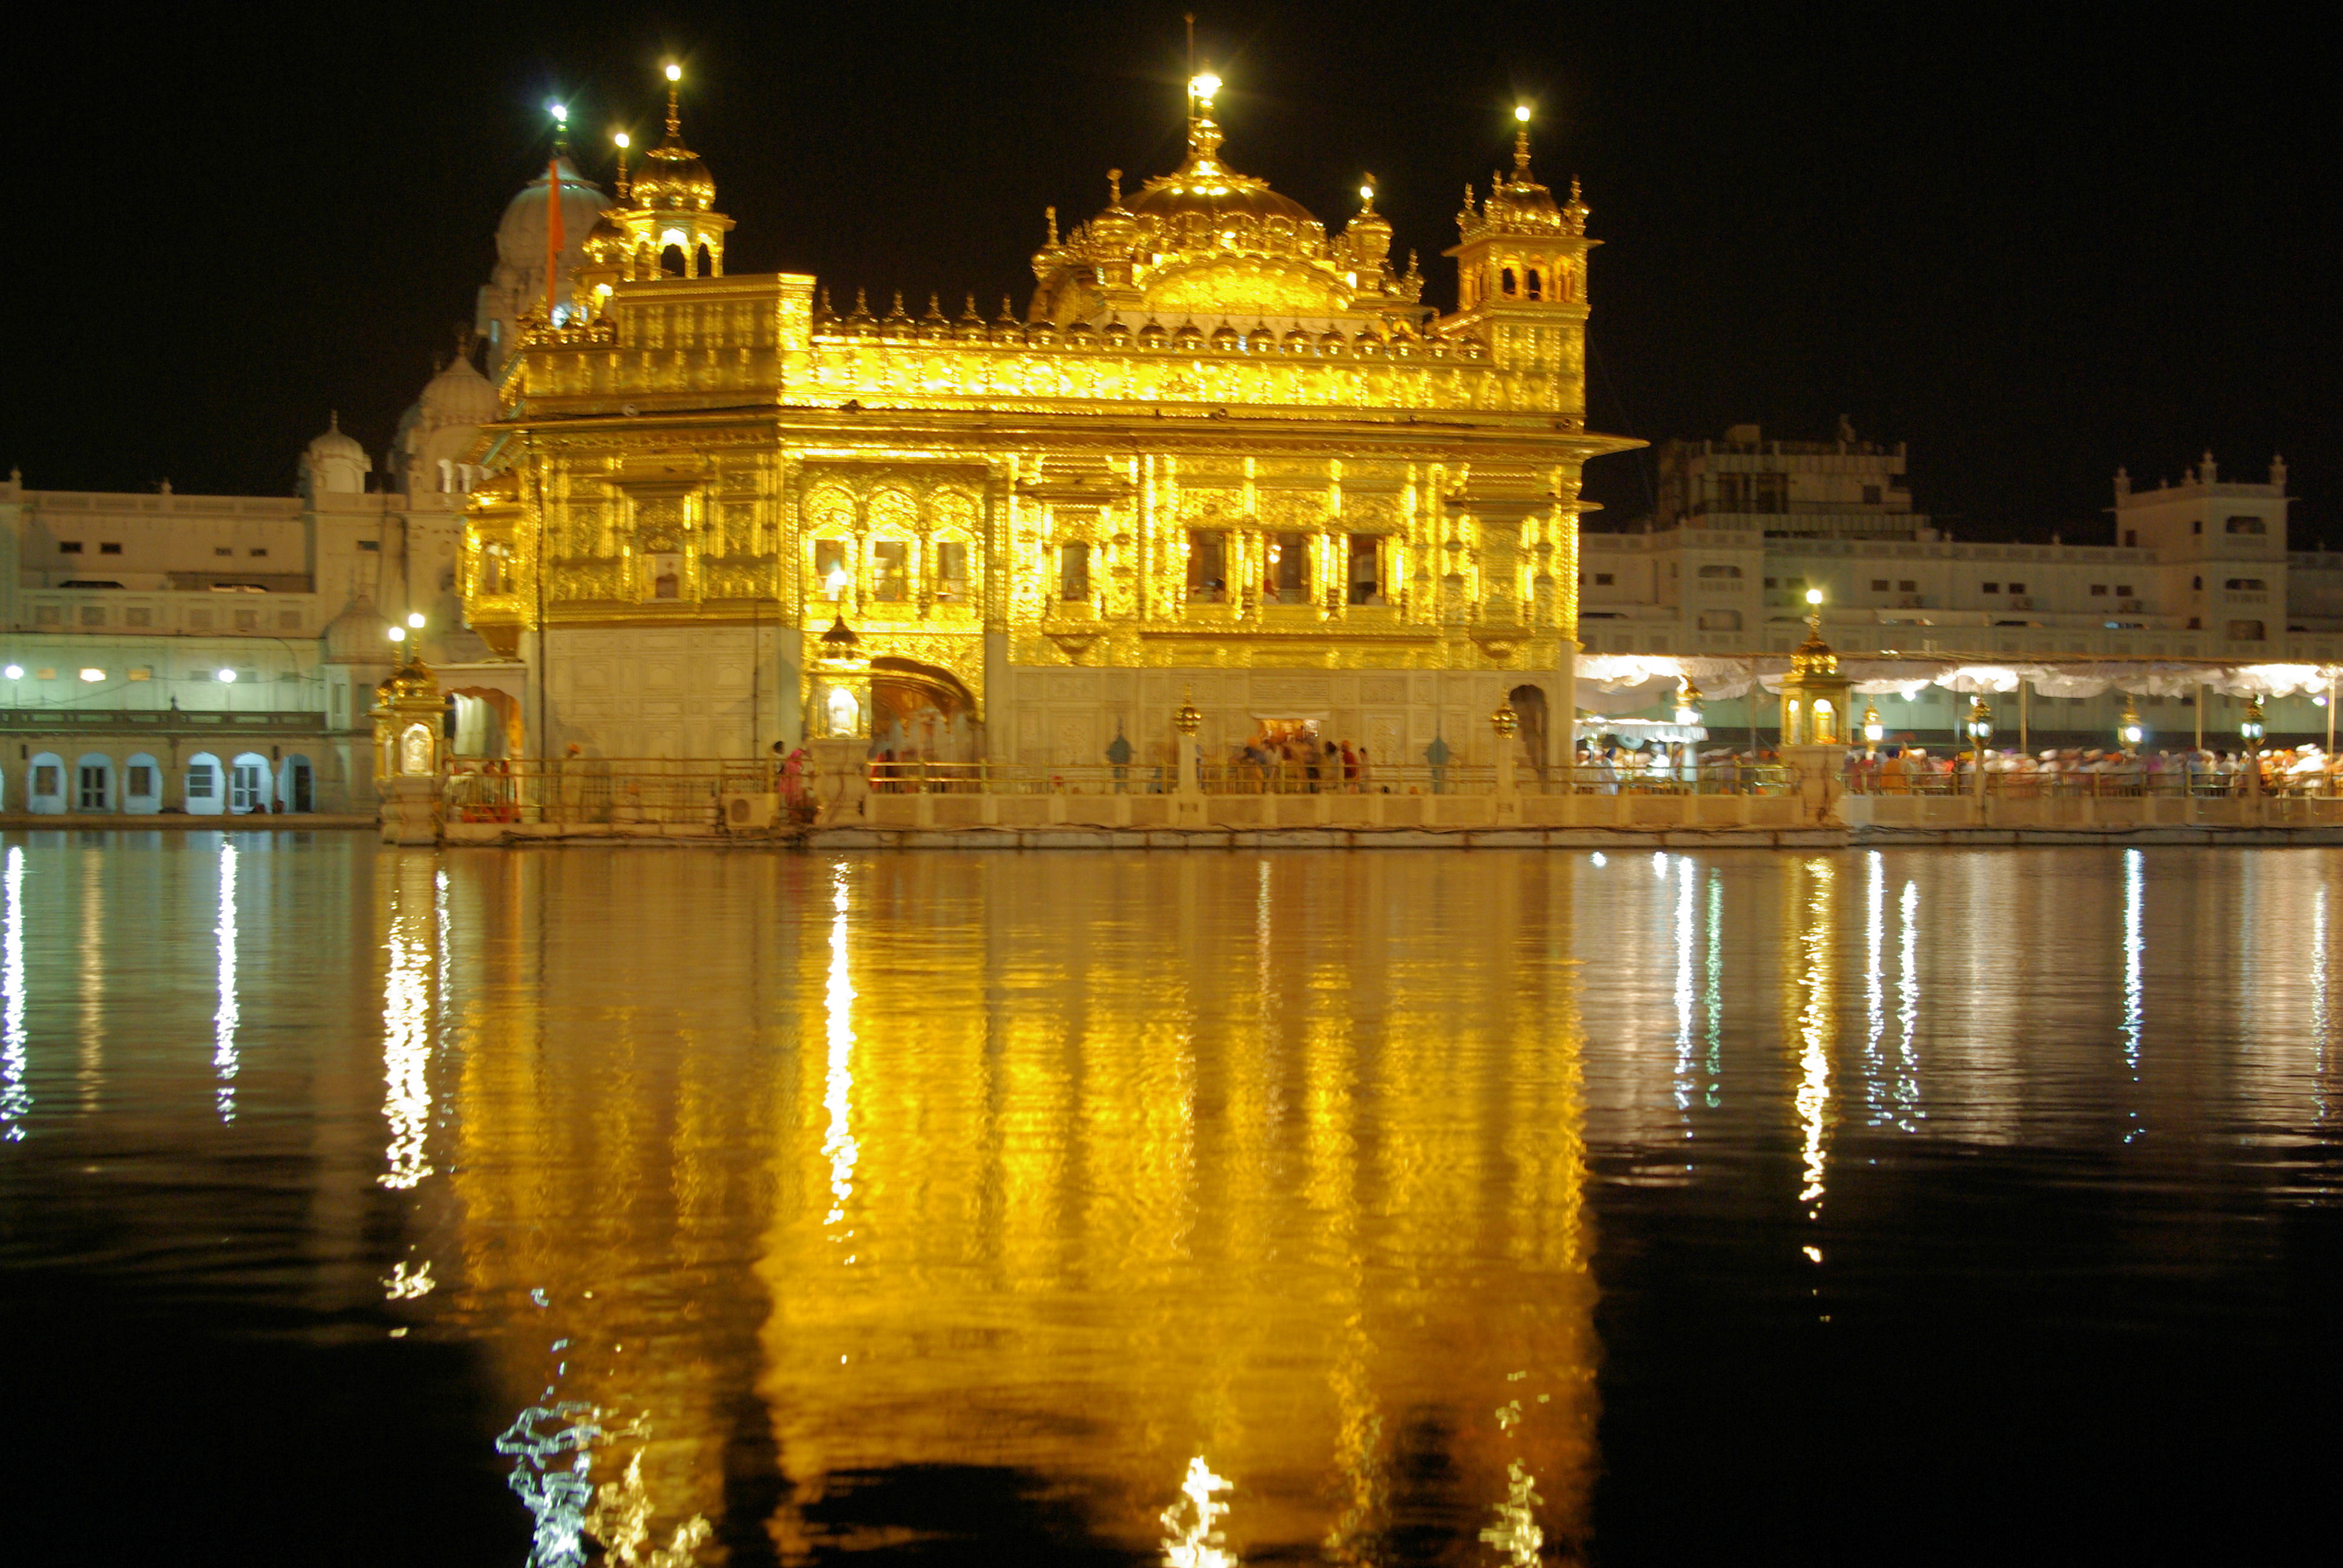 golden temple - amritsar photos, images and wallpapers, hd images